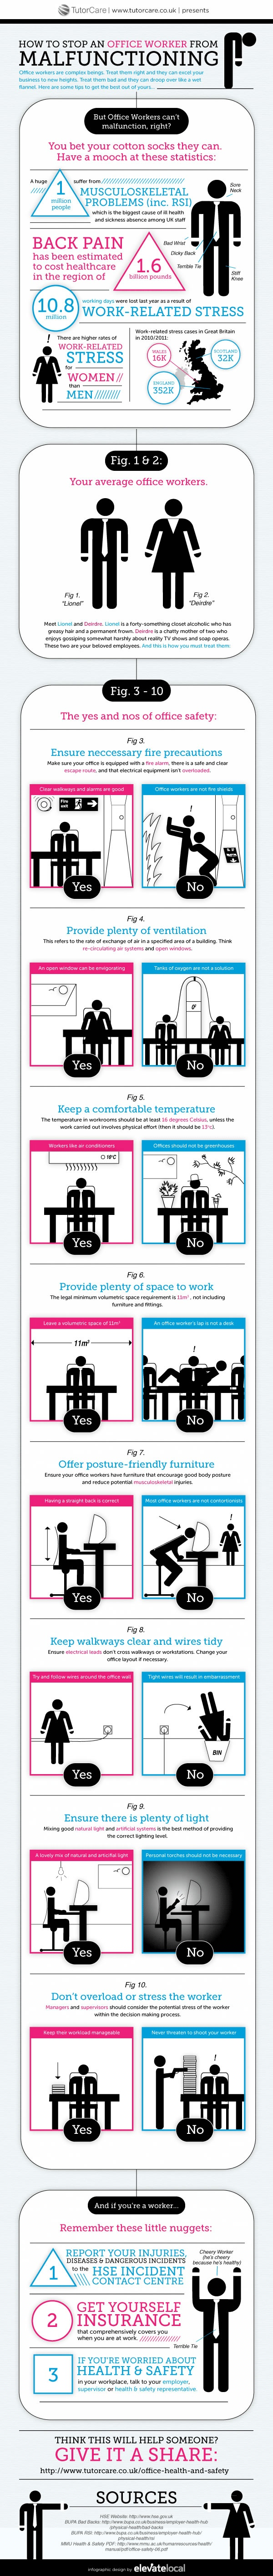 An amusing, fun way to consider keeping office workers healthy.  Source: Tutorcare (UK)   http://rapidbi.com/daily-maintenance-for-your-workers/